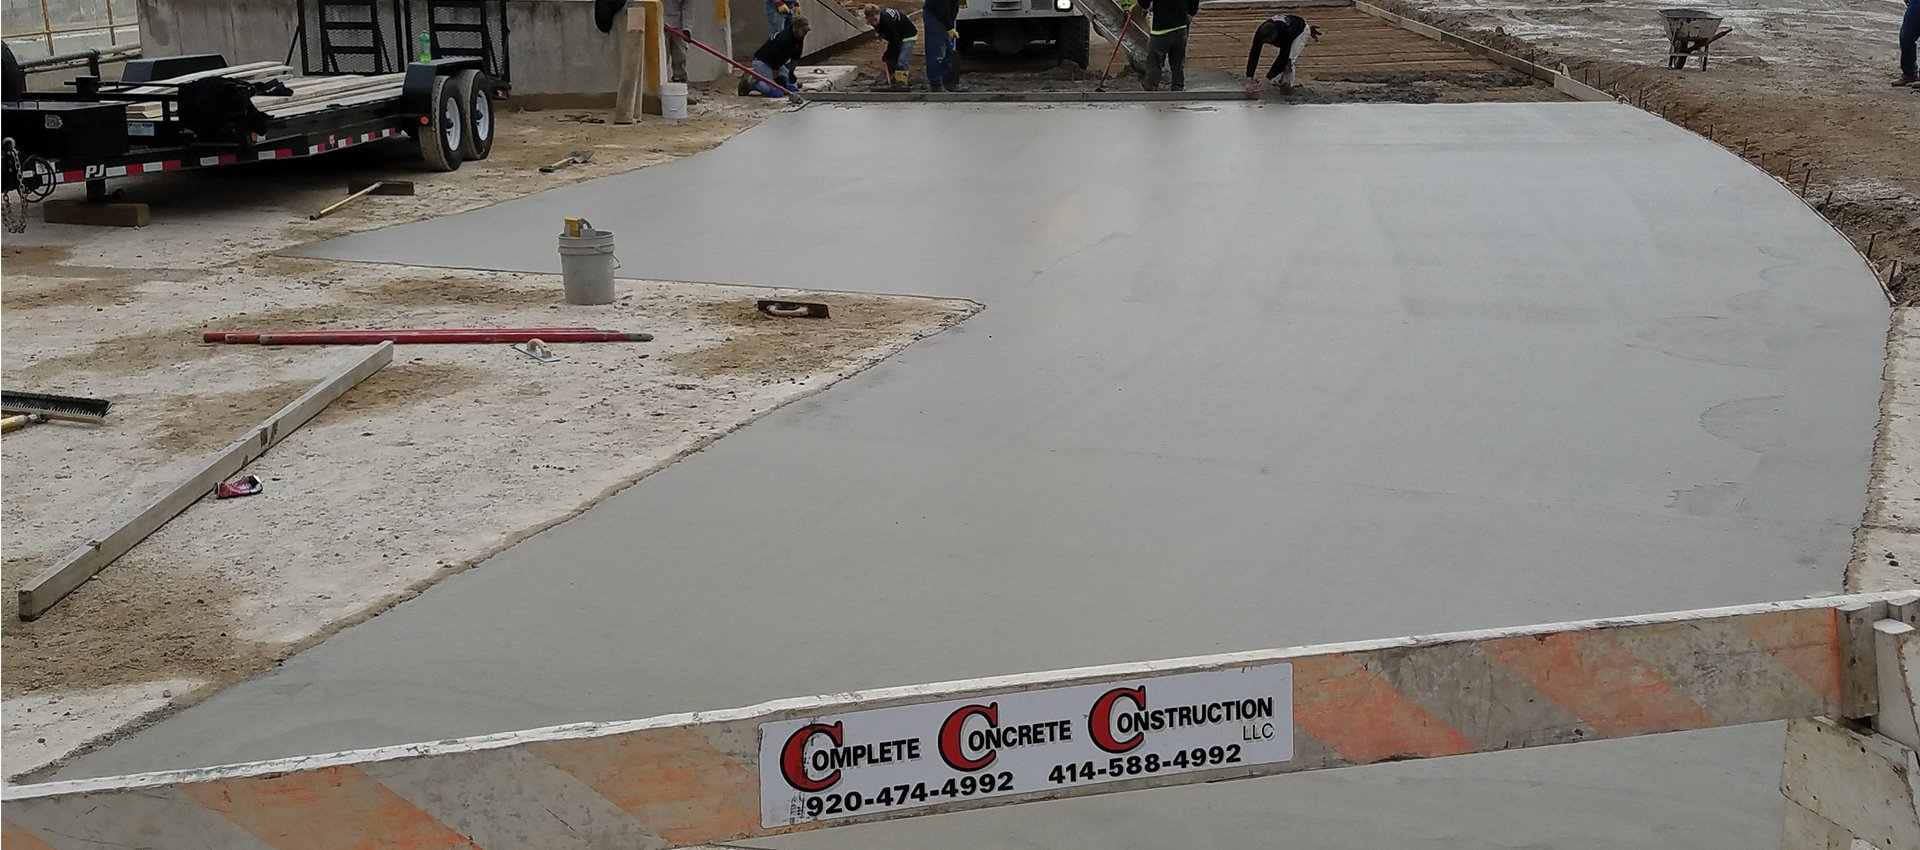 complete_concrete-construction-wisconsin-slider8